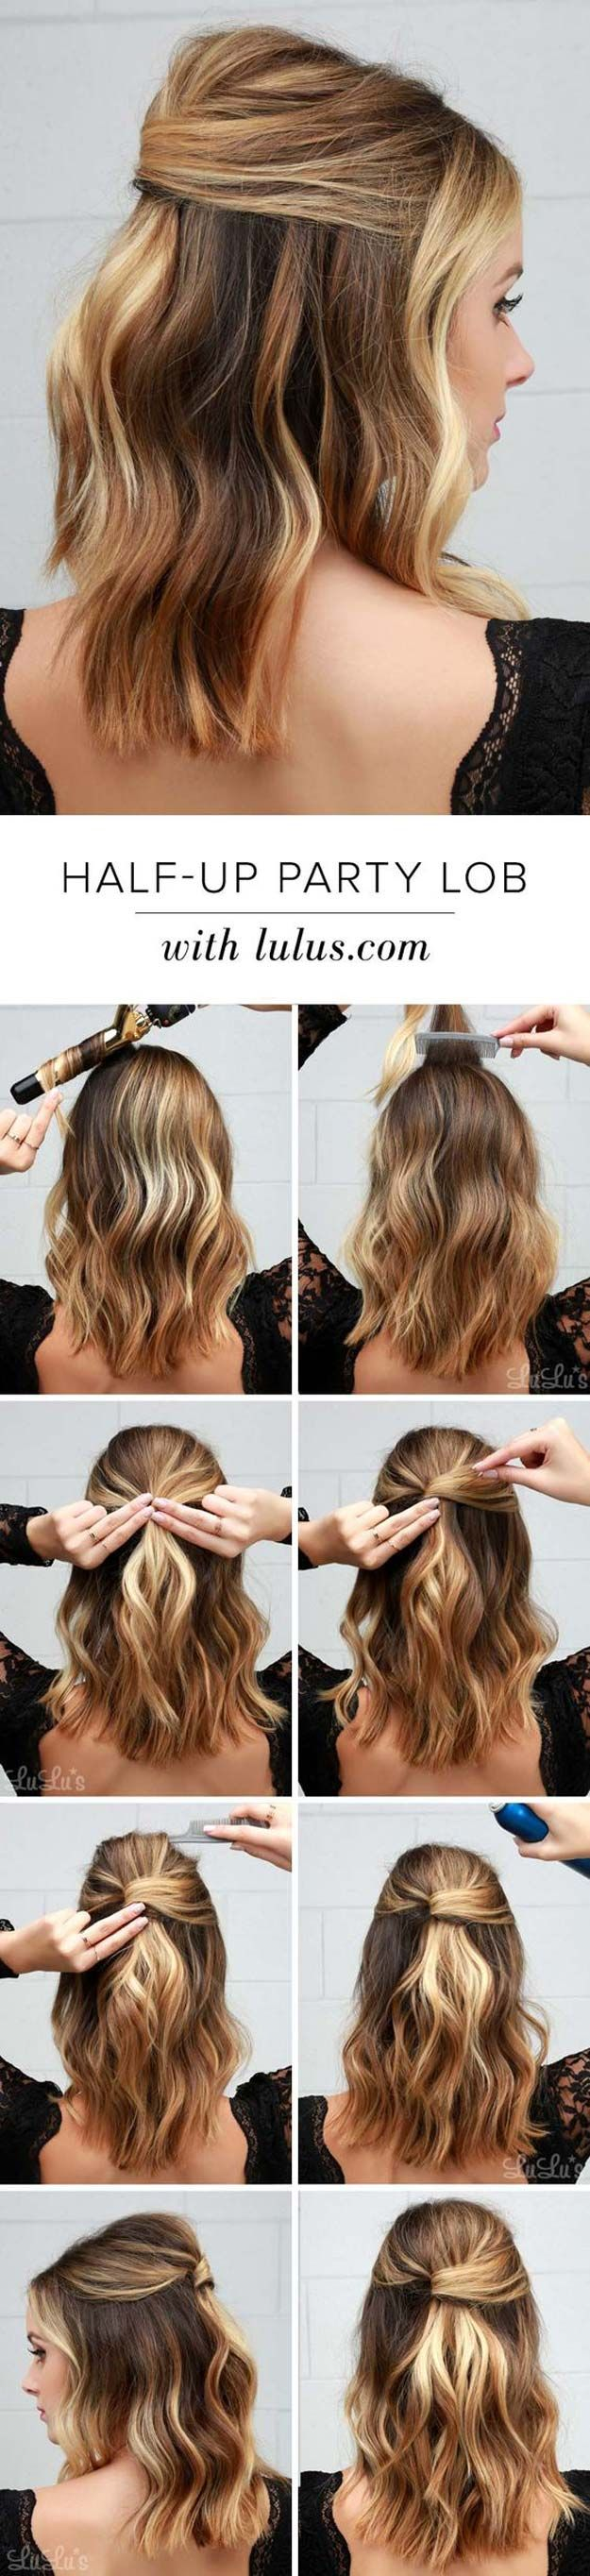 Quick and easy short hair styles shoulder length hair shoulder